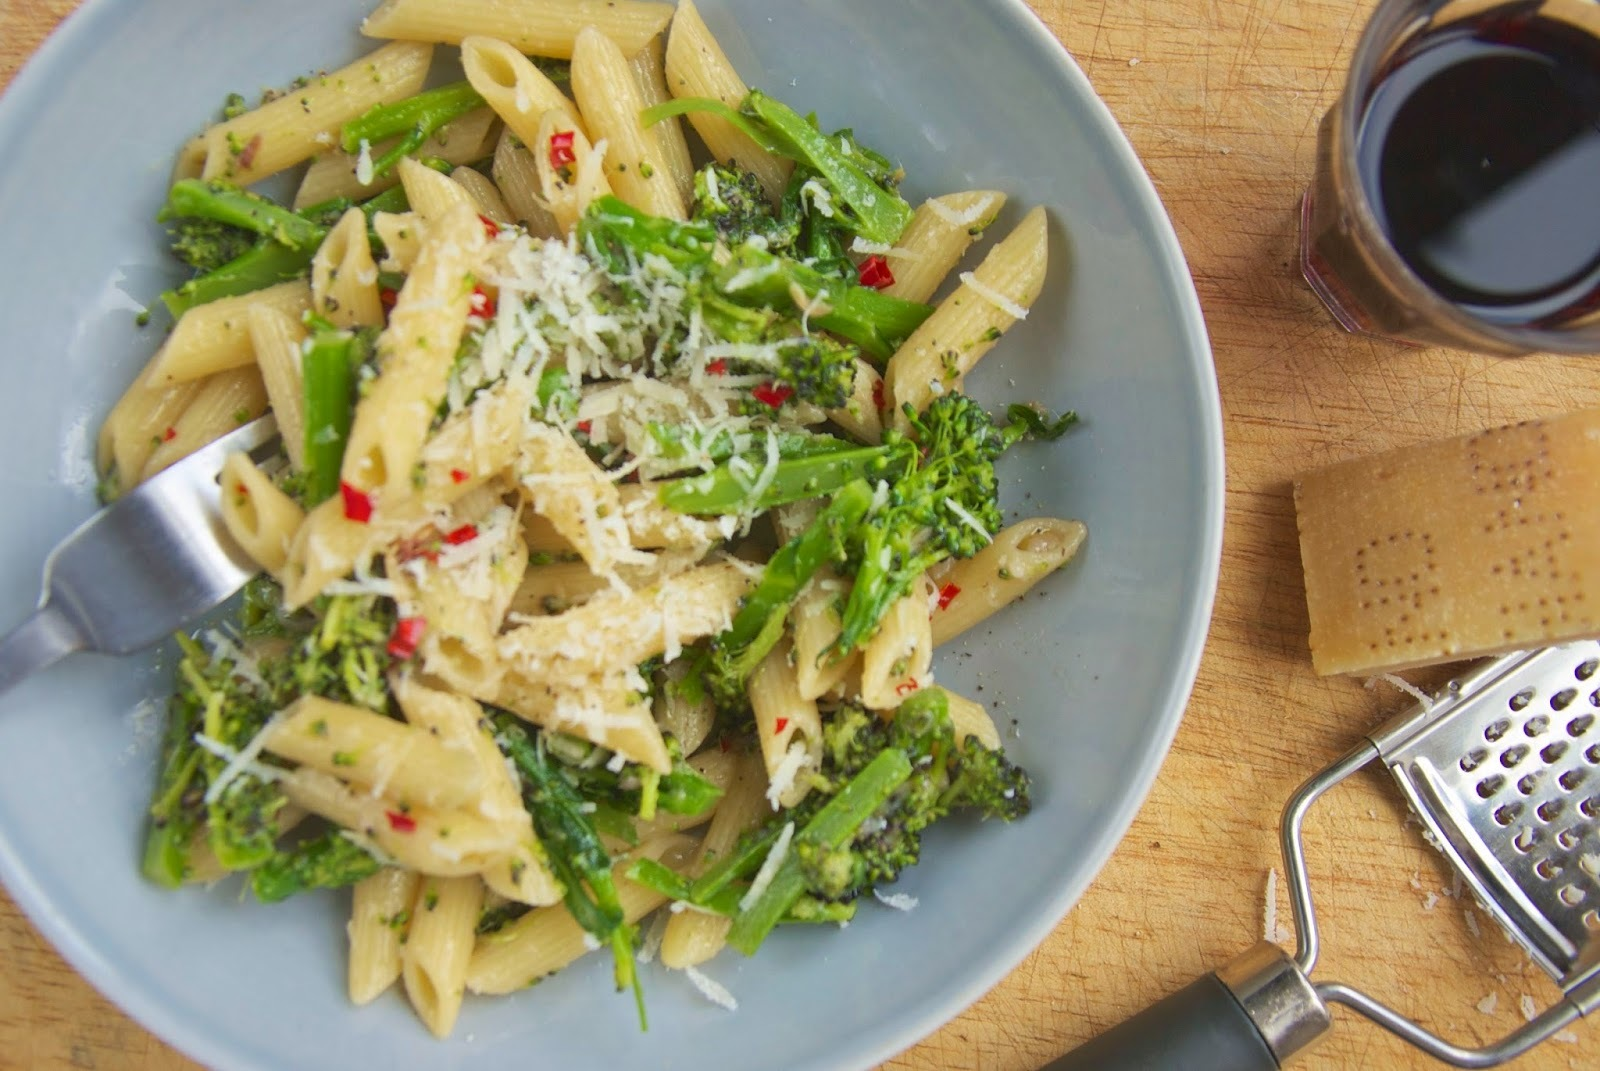 Penne with broccoli, anchovy, chilli and garlic